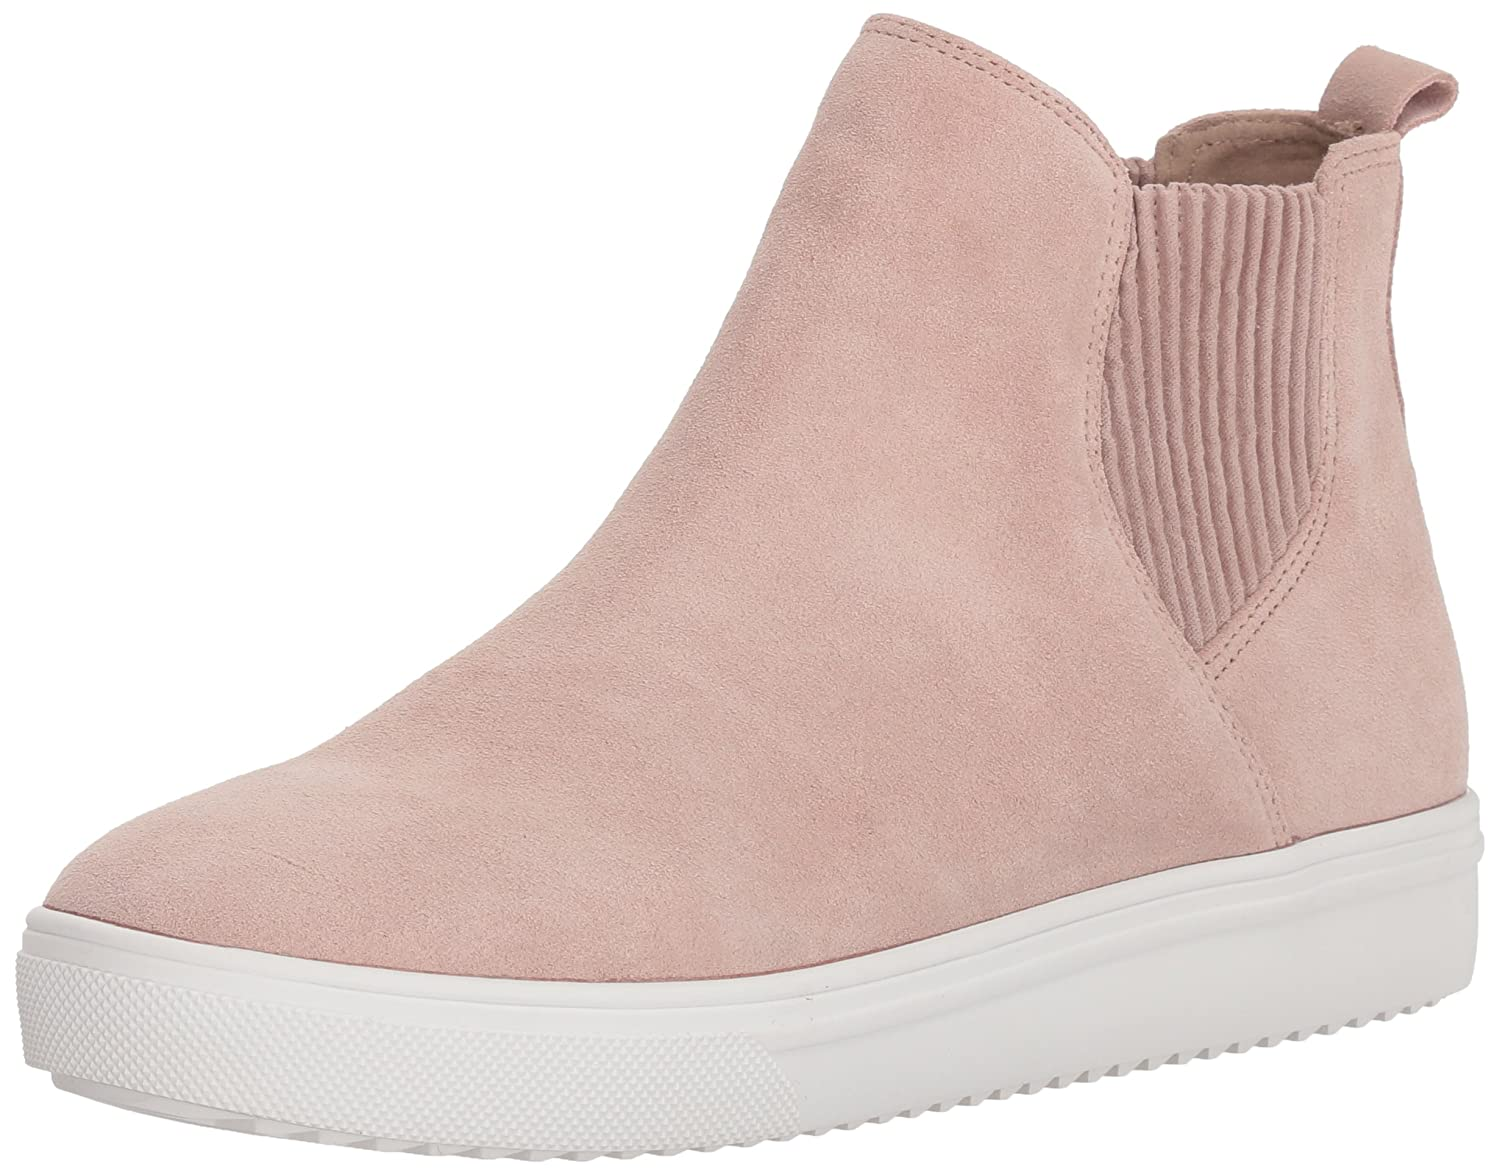 Blondo Women's Gennie Waterproof Sneaker B079G4Z6D3 10 B(M) US|Light Pink Suede